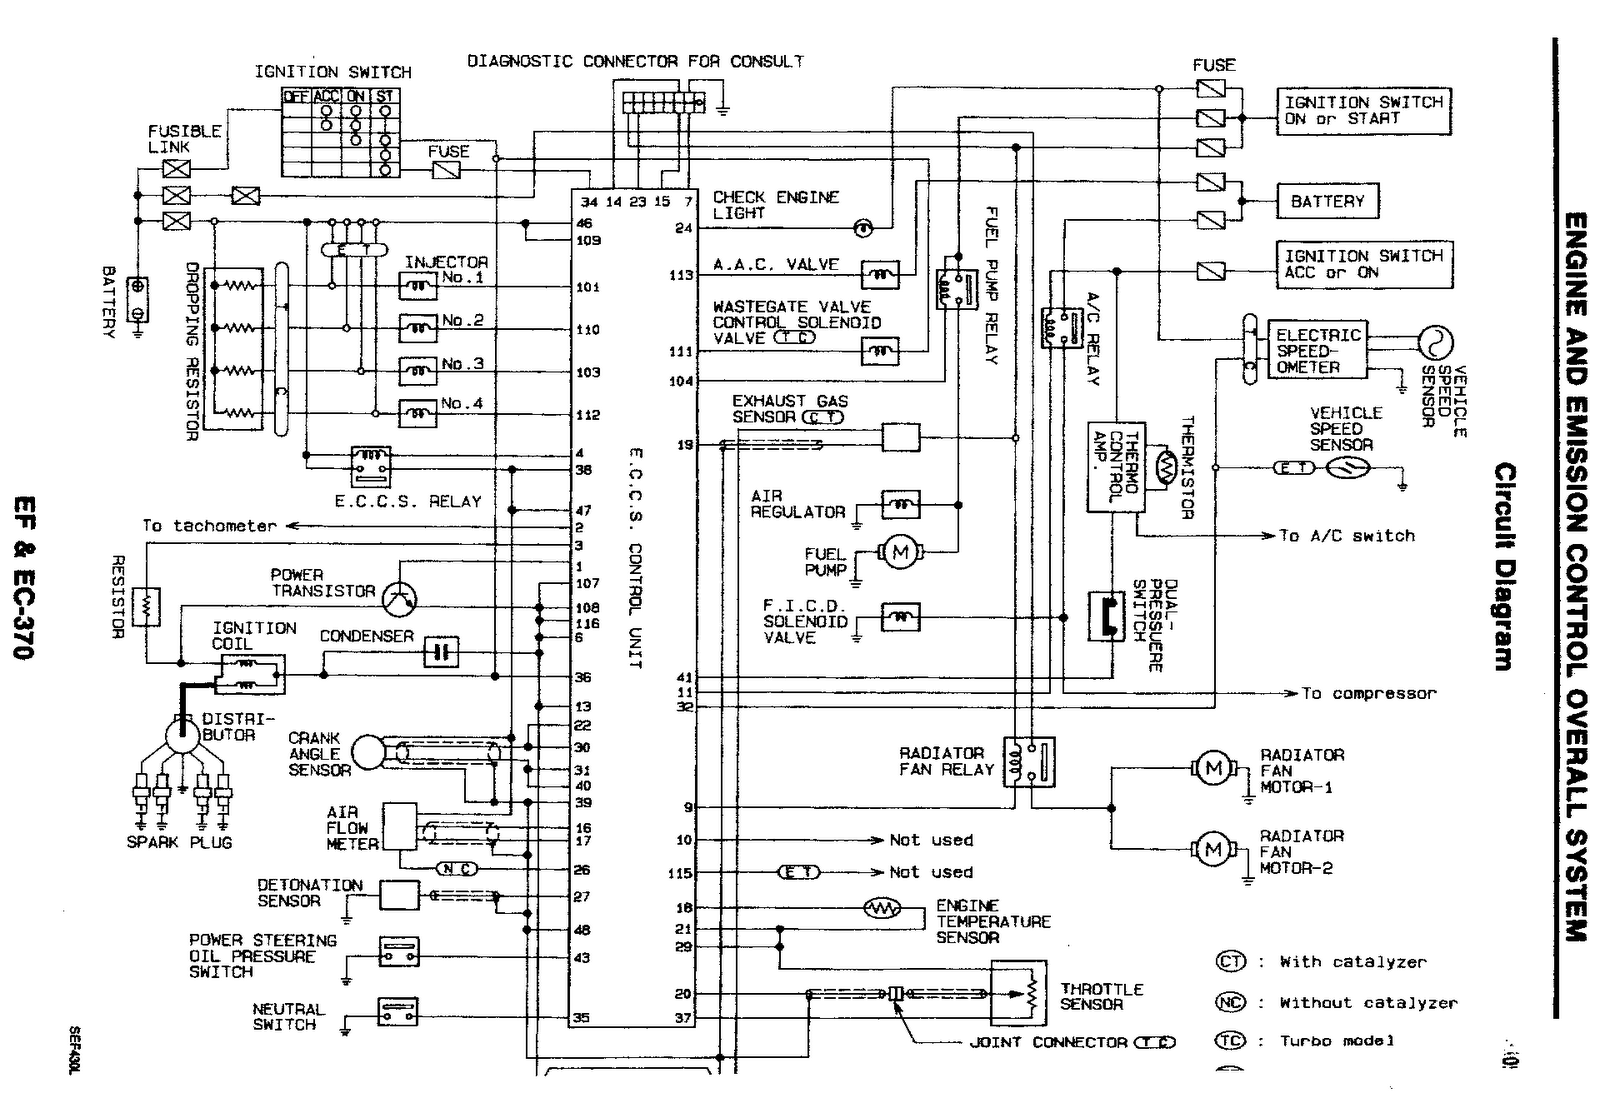 Excellent Stereo Wiring Diagram Mitsubishi Magna Wiring Library Wiring Cloud Picalendutblikvittorg